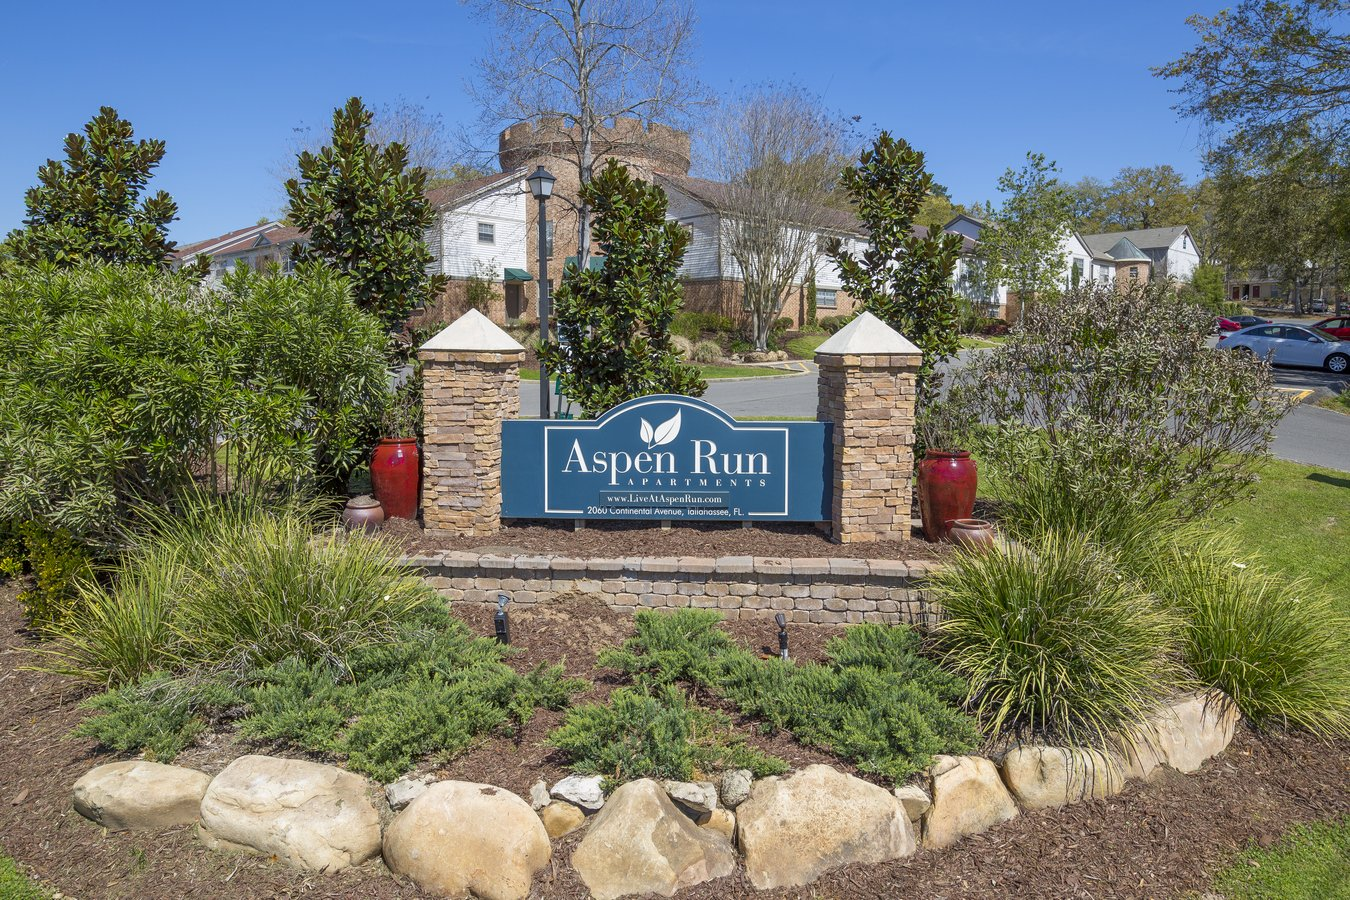 2 Bedrooms 1 Bathroom Apartment for rent at Aspen Run Apartments in Tallahassee, FL